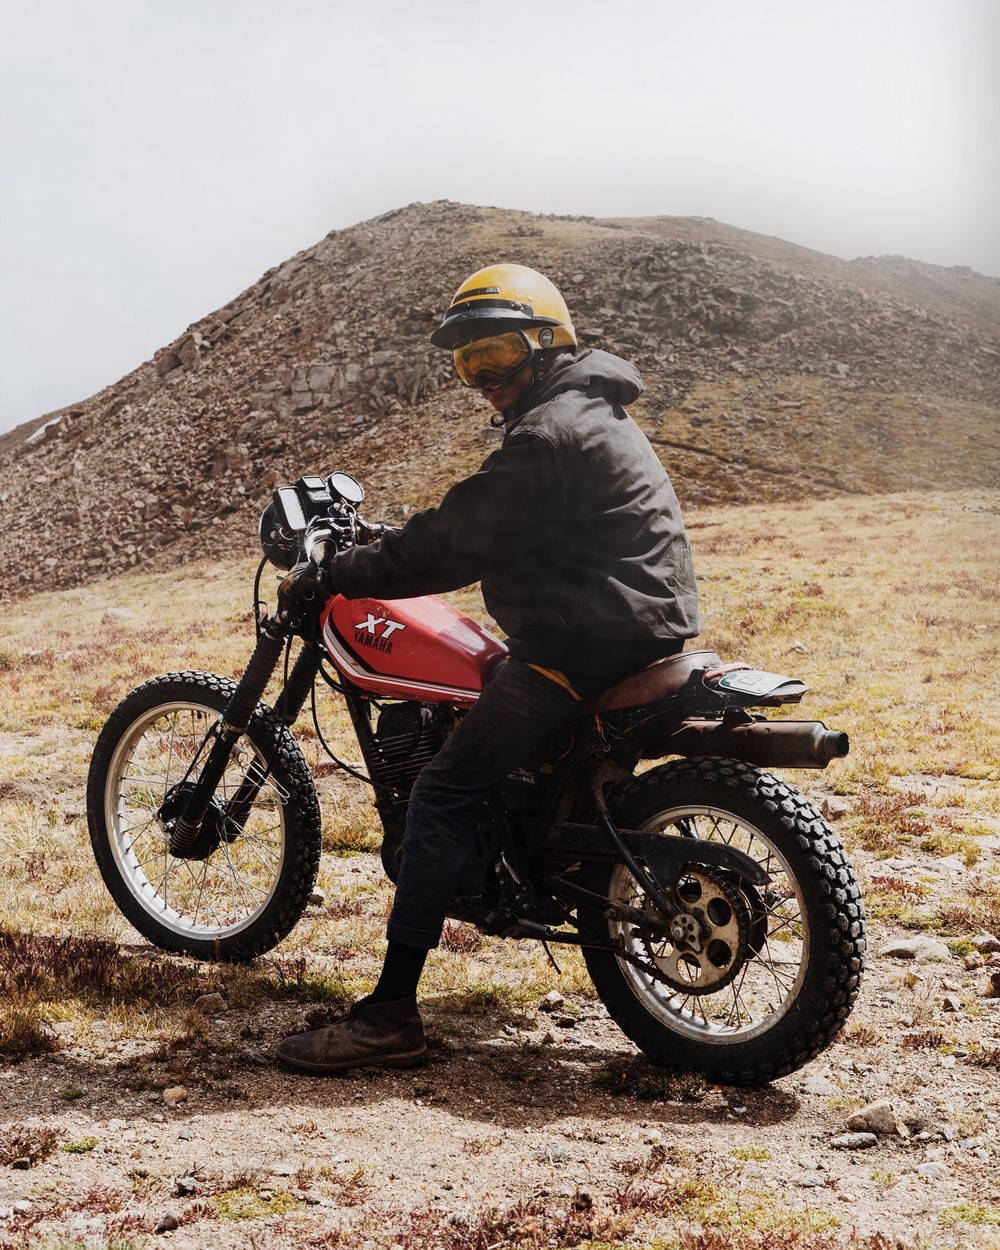 man in gray jacket riding dirt bike